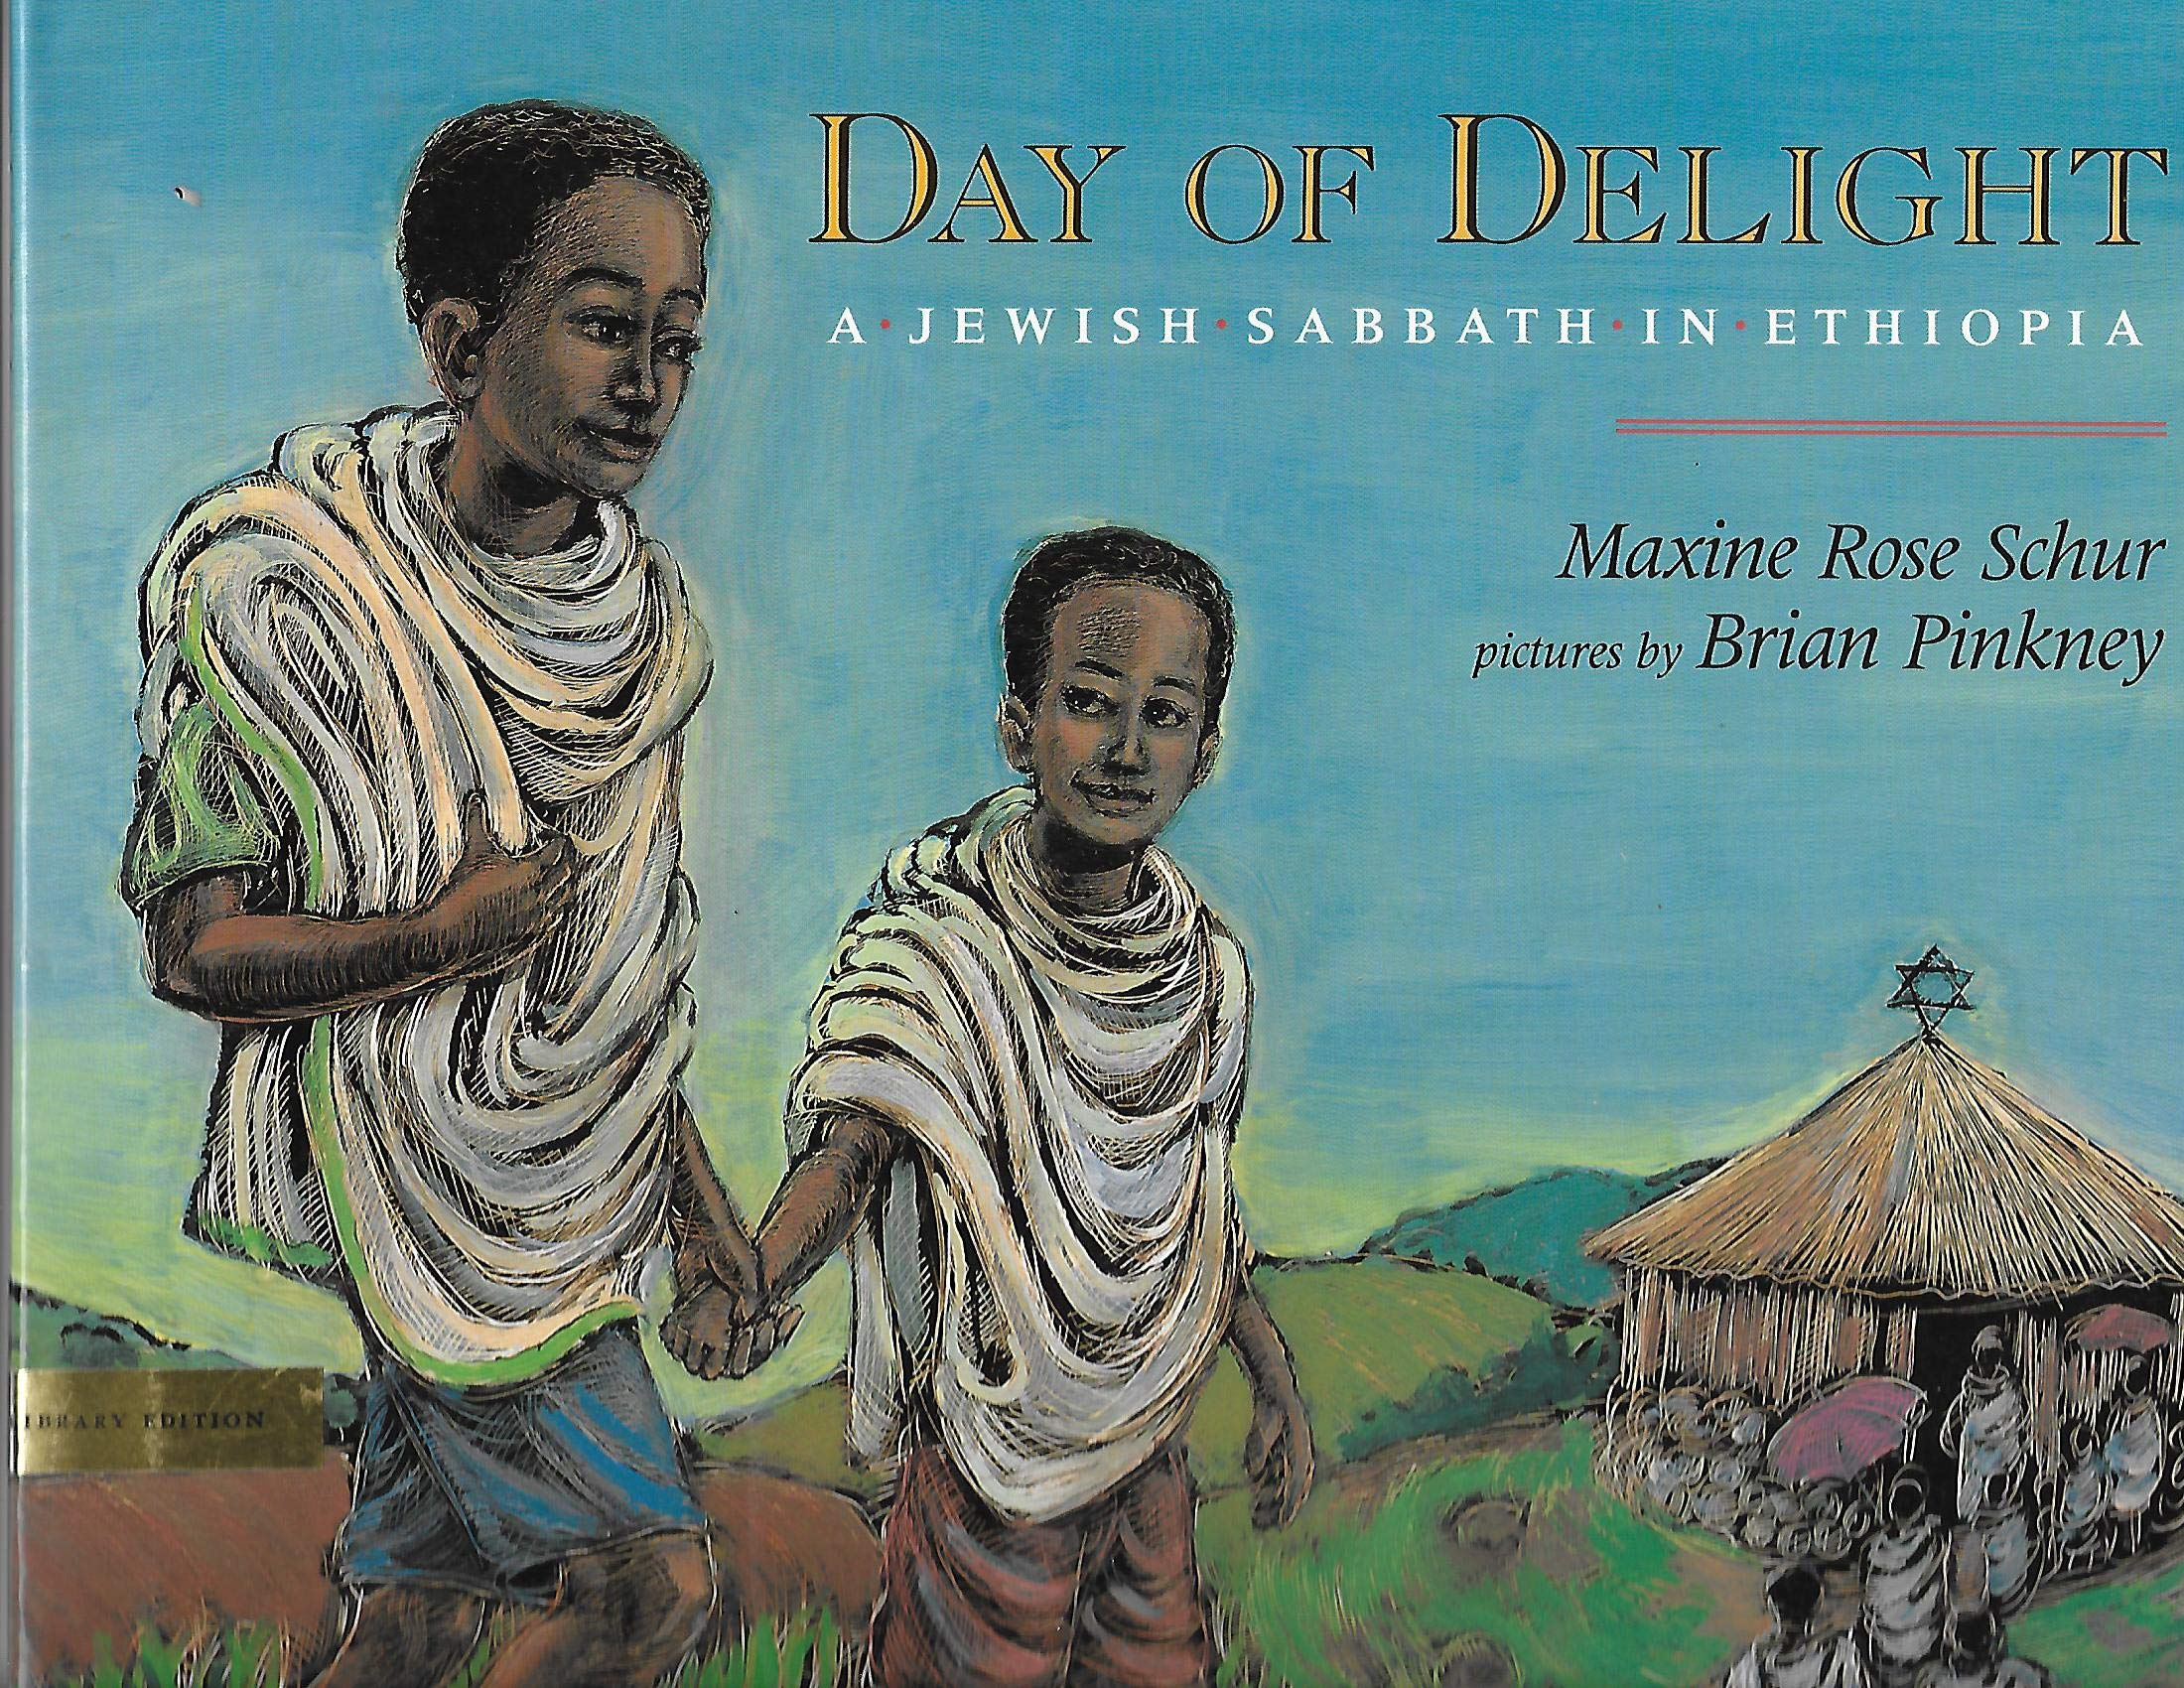 A Day of Delight A Jewish Sabbath in Ethiopia